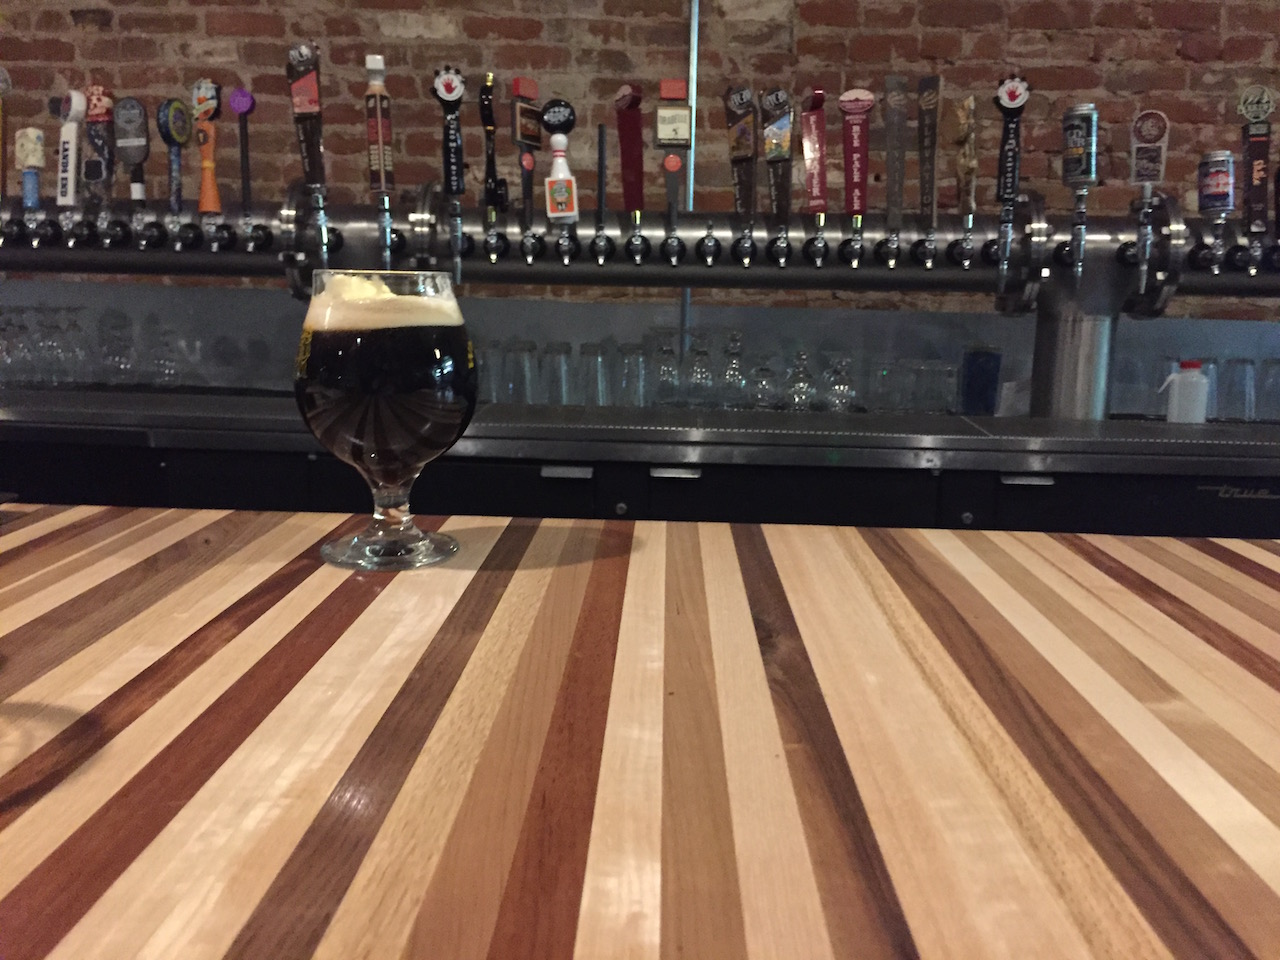 Double Chocolate Raspberry Nitro Stout